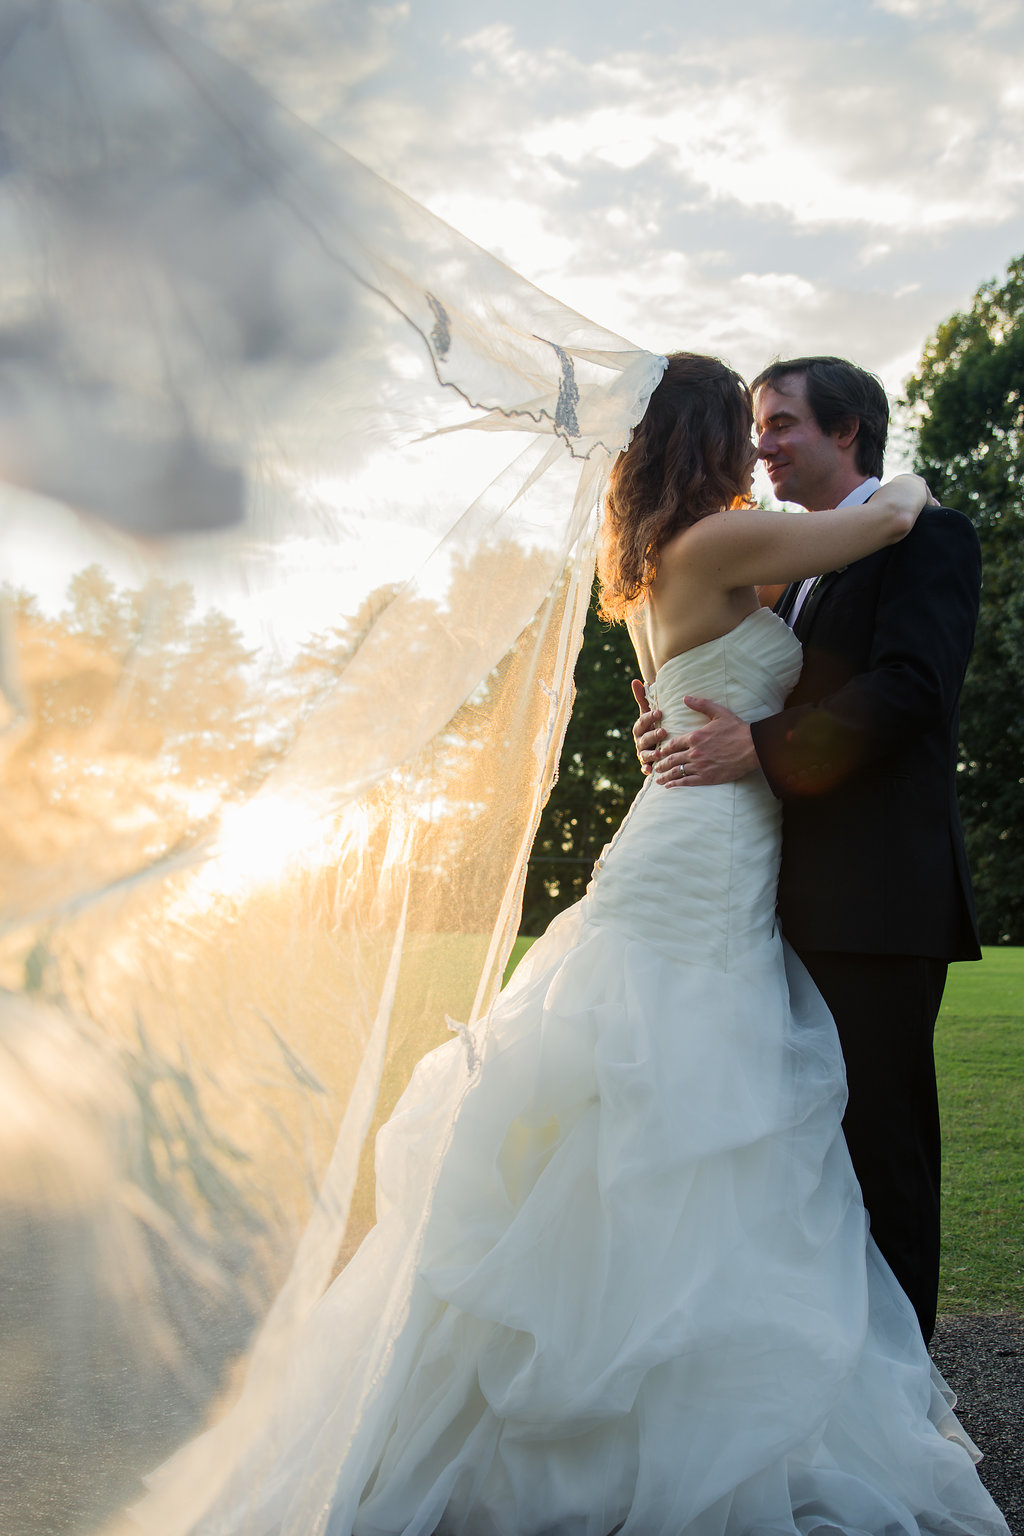 Bride and Groom Kissing with veil during sunset at Pilot Knob Country Club. Wedding Photography by Party of Two Photography.